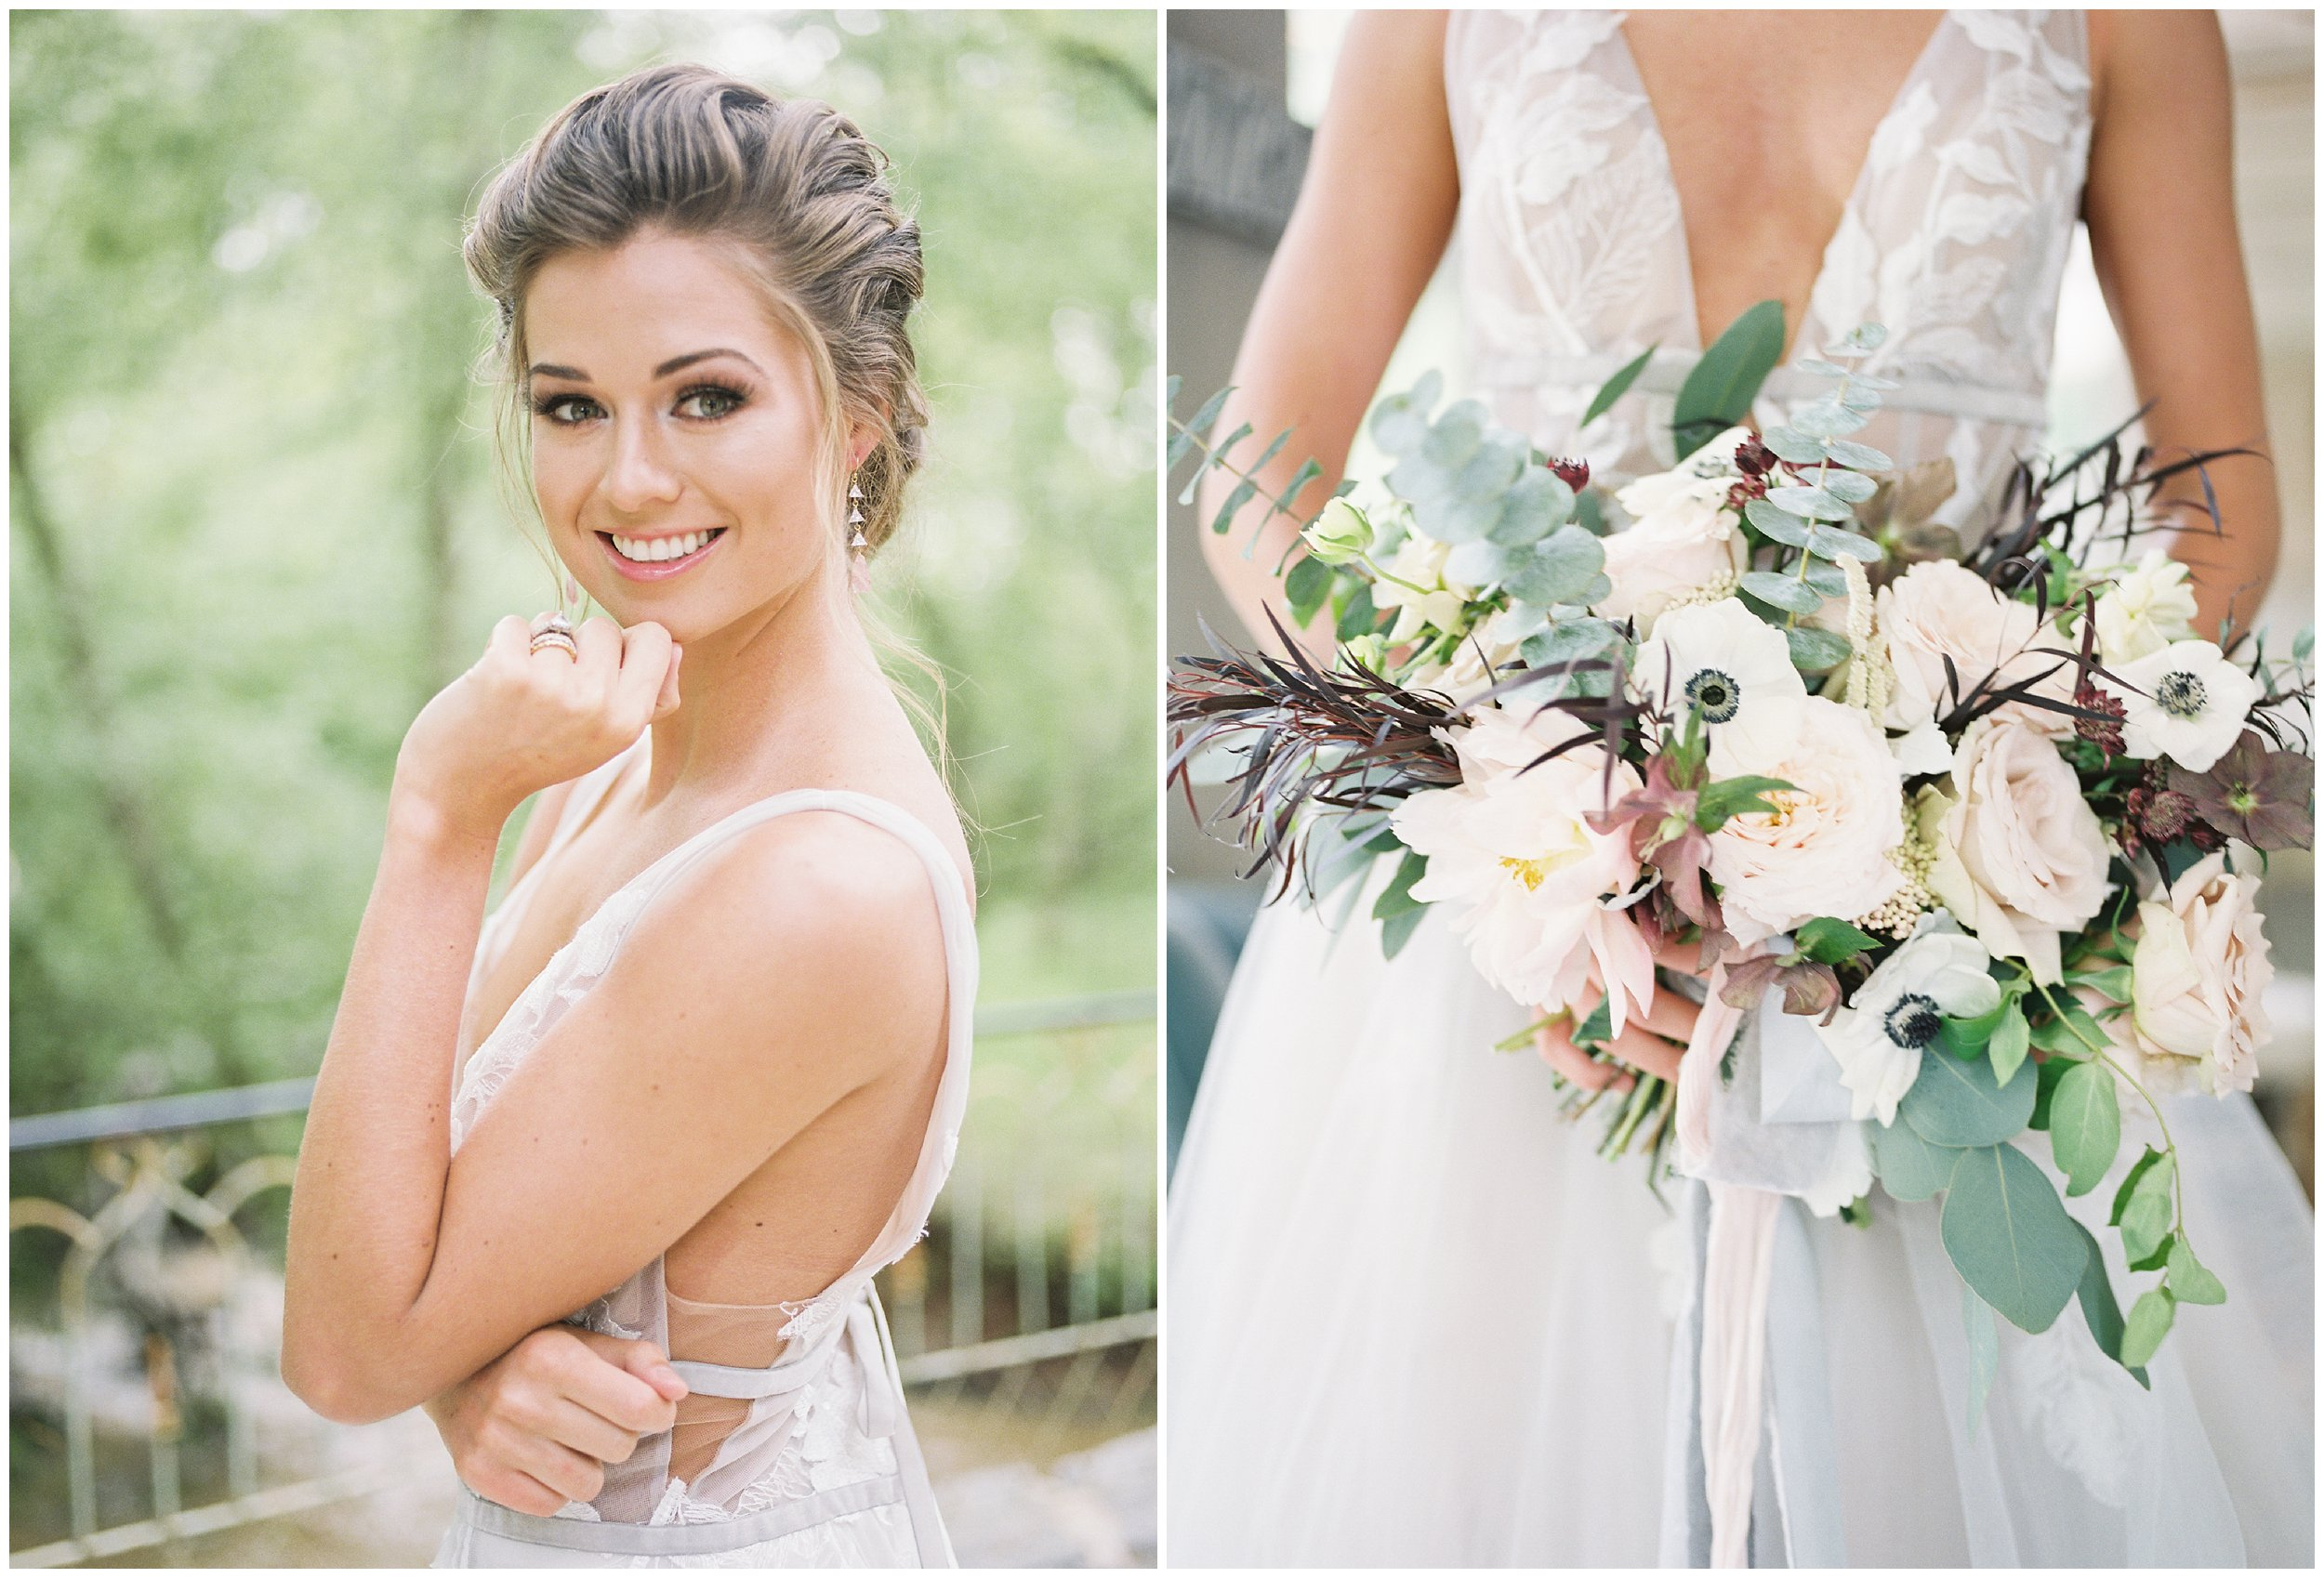 gorgeous bridal portrait and bouquet details